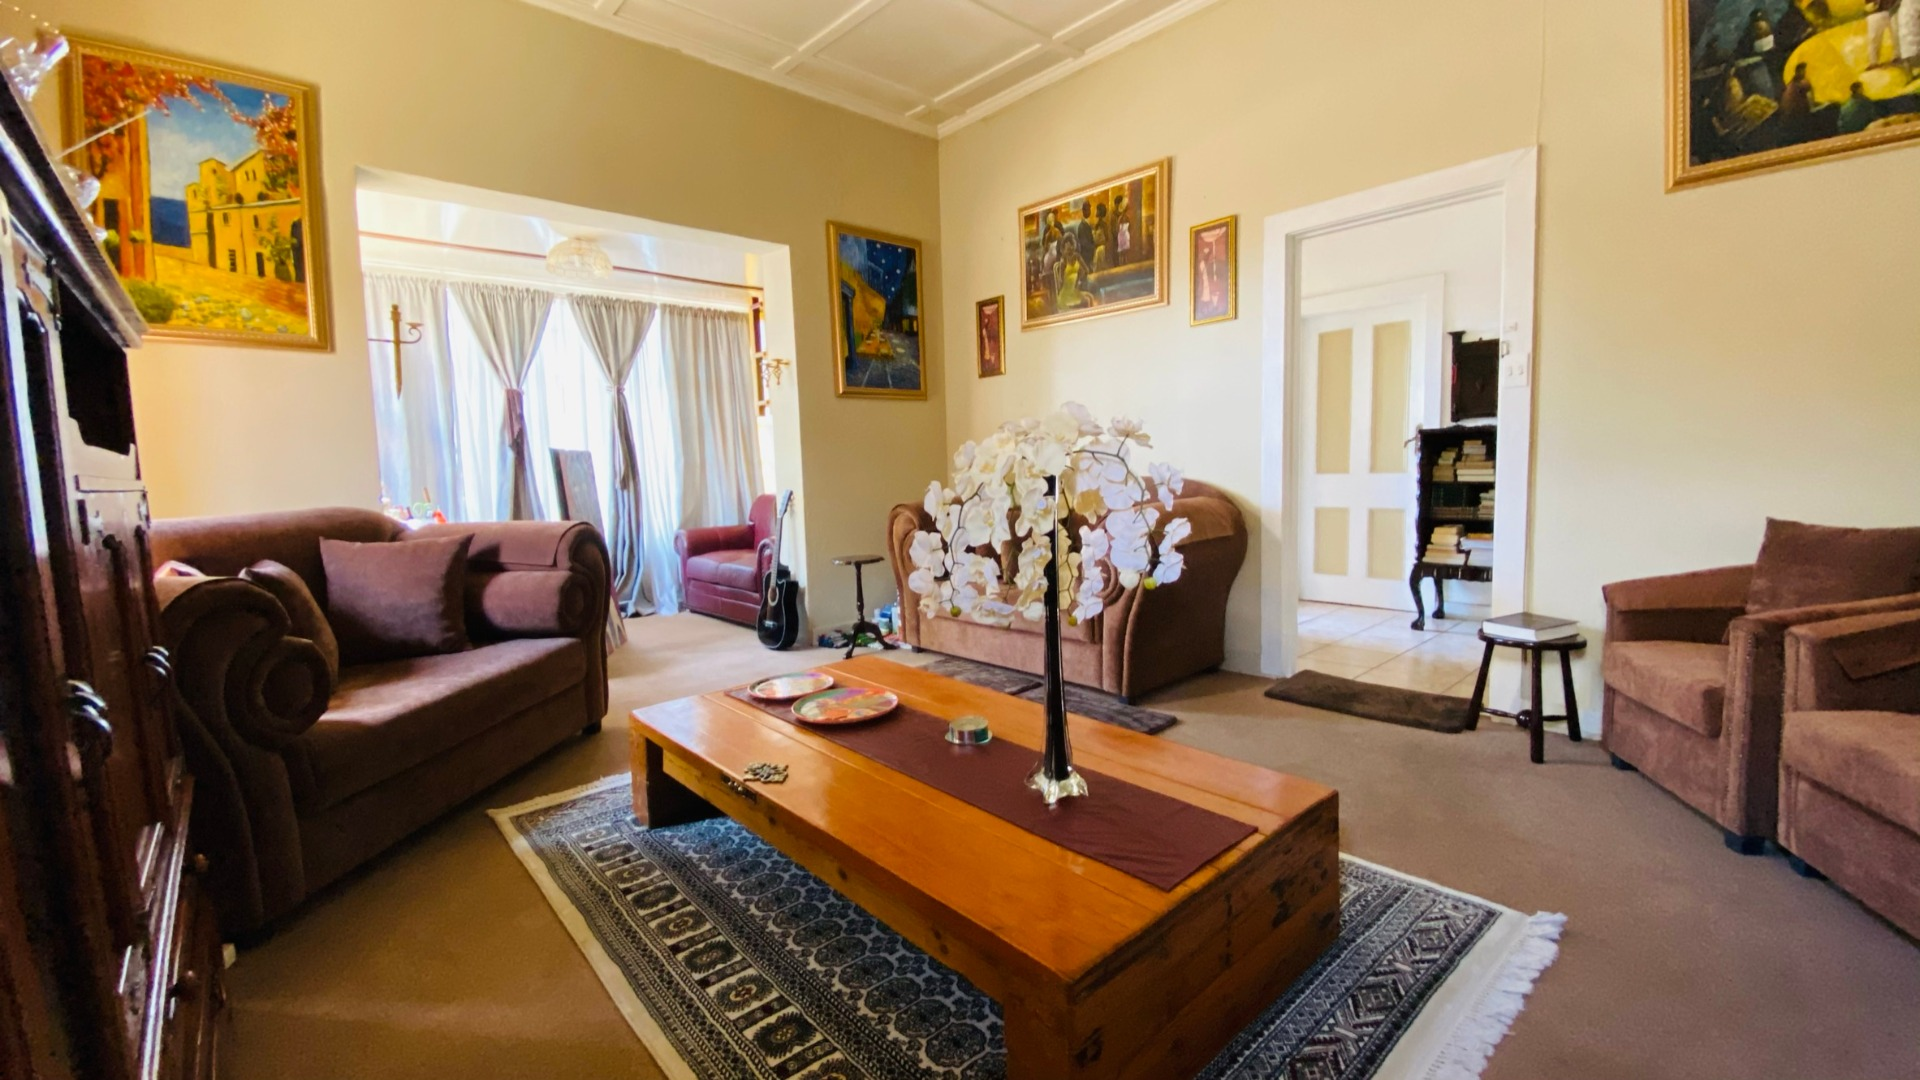 3 Bedroom House For Sale in Kenilworth